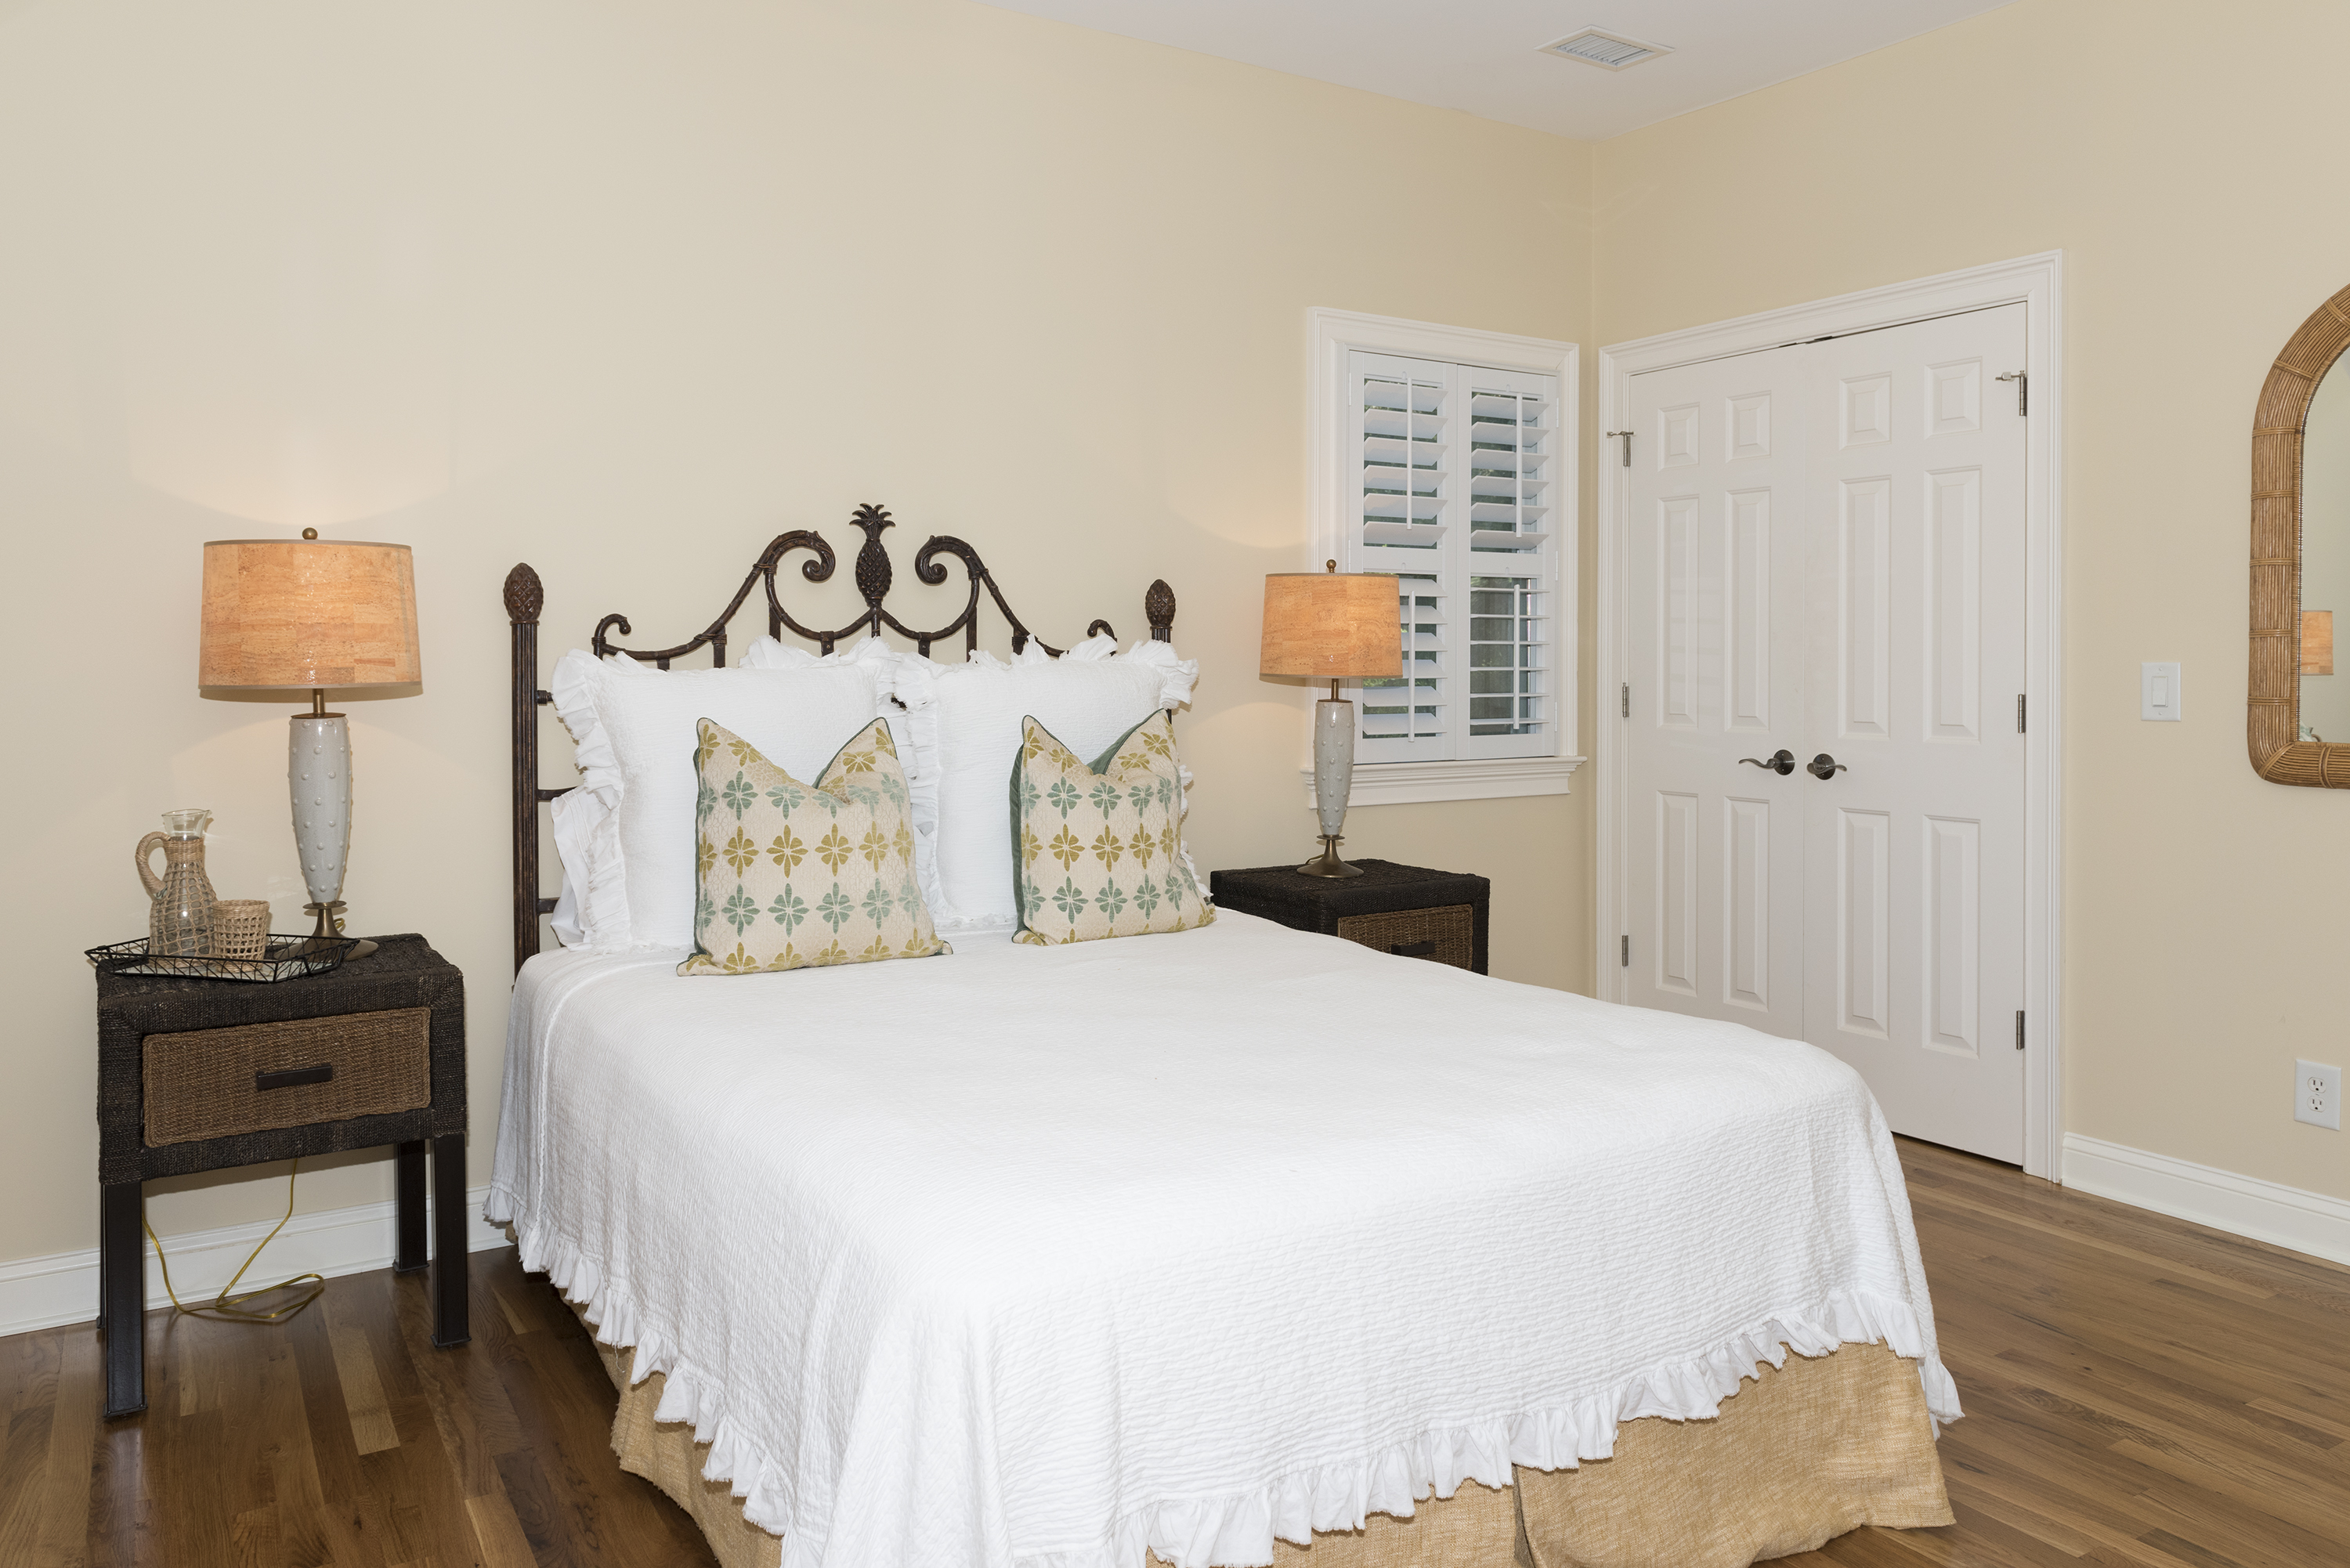 The third bedroom is on the second floor and has a comfortable queen size bed.